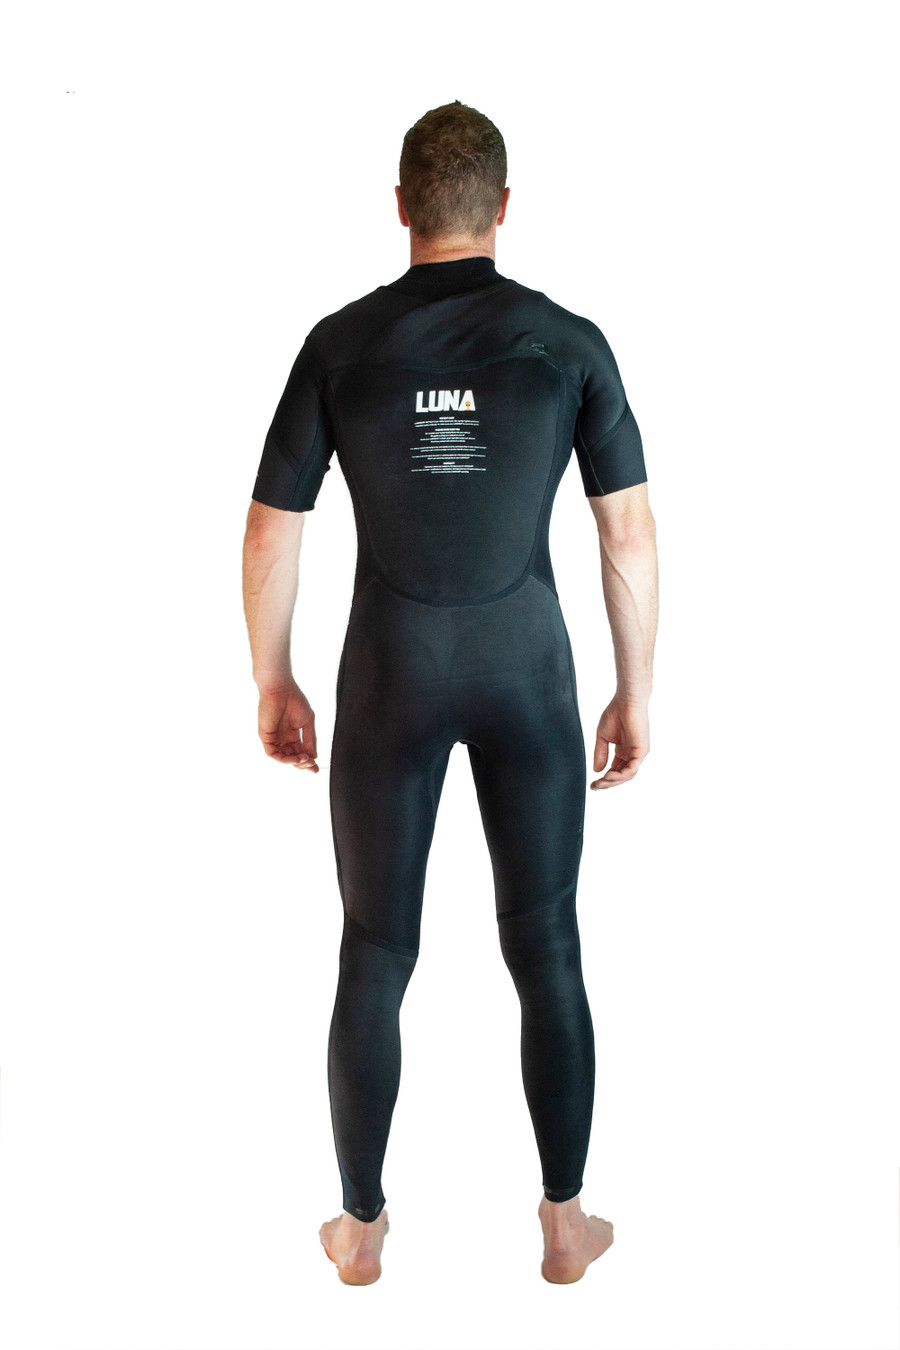 Luna surf wetsuits